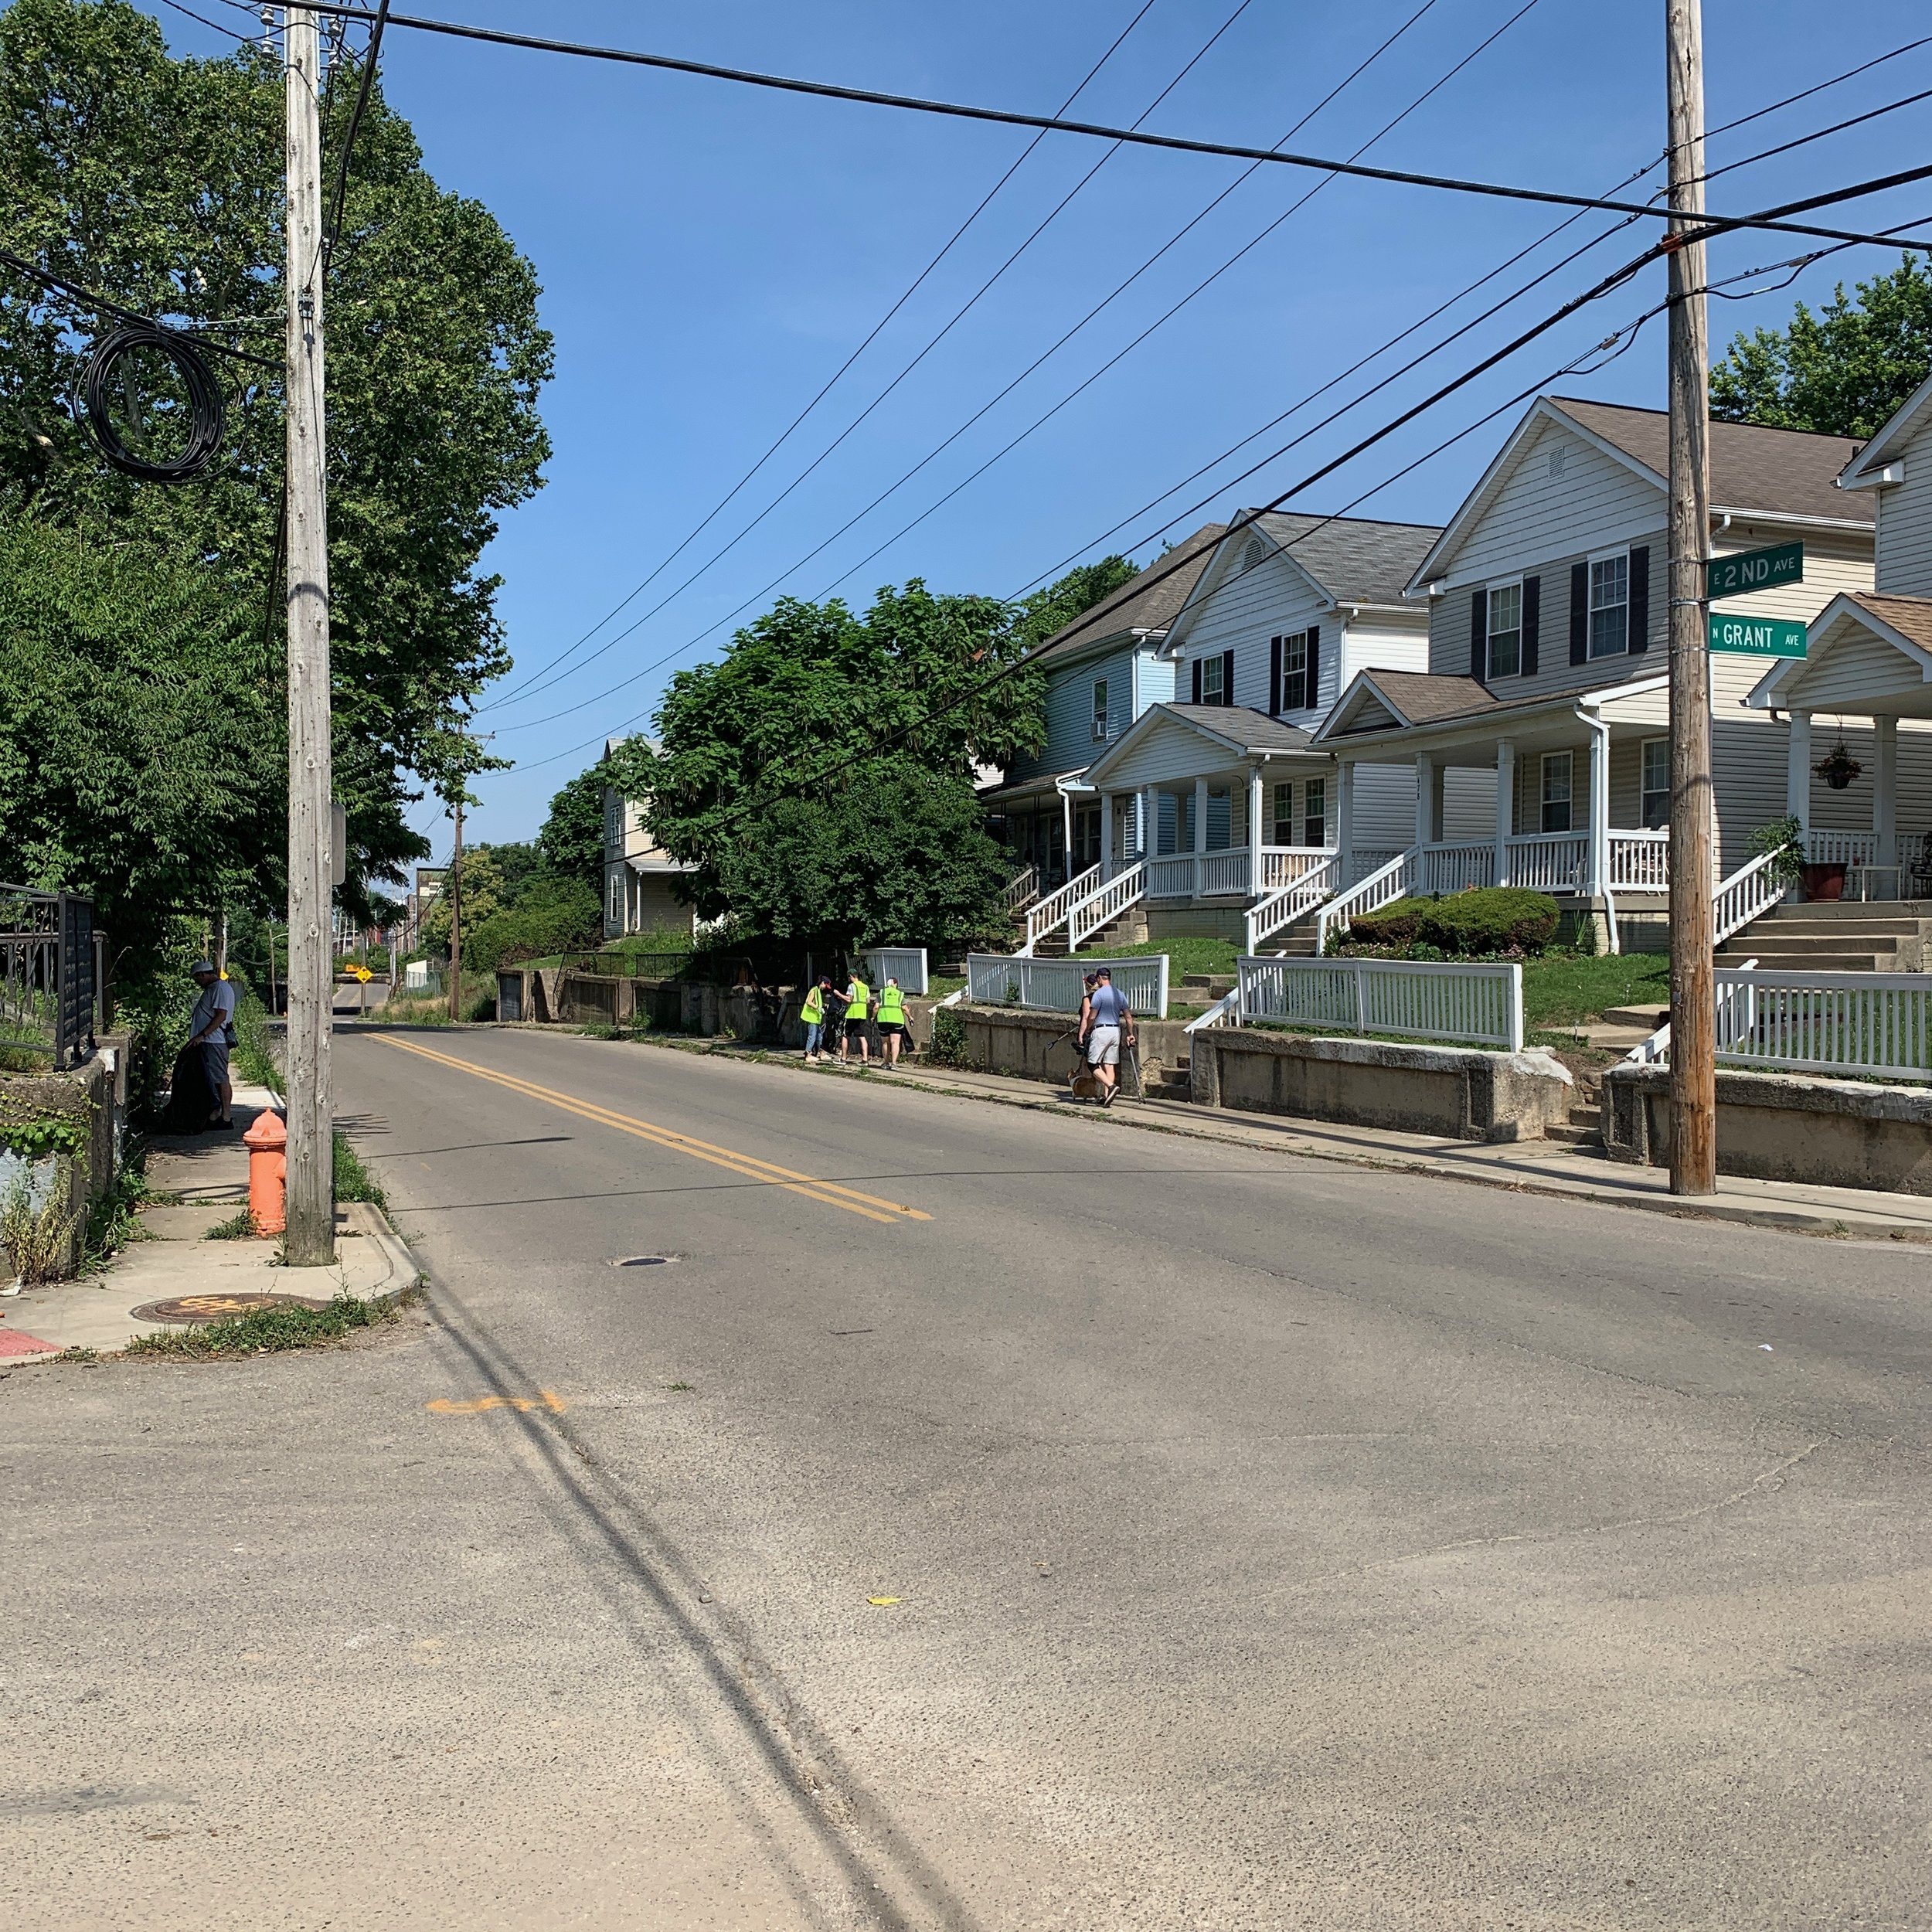 2019-07-02_Litter-CleanUp_00002.jpeg